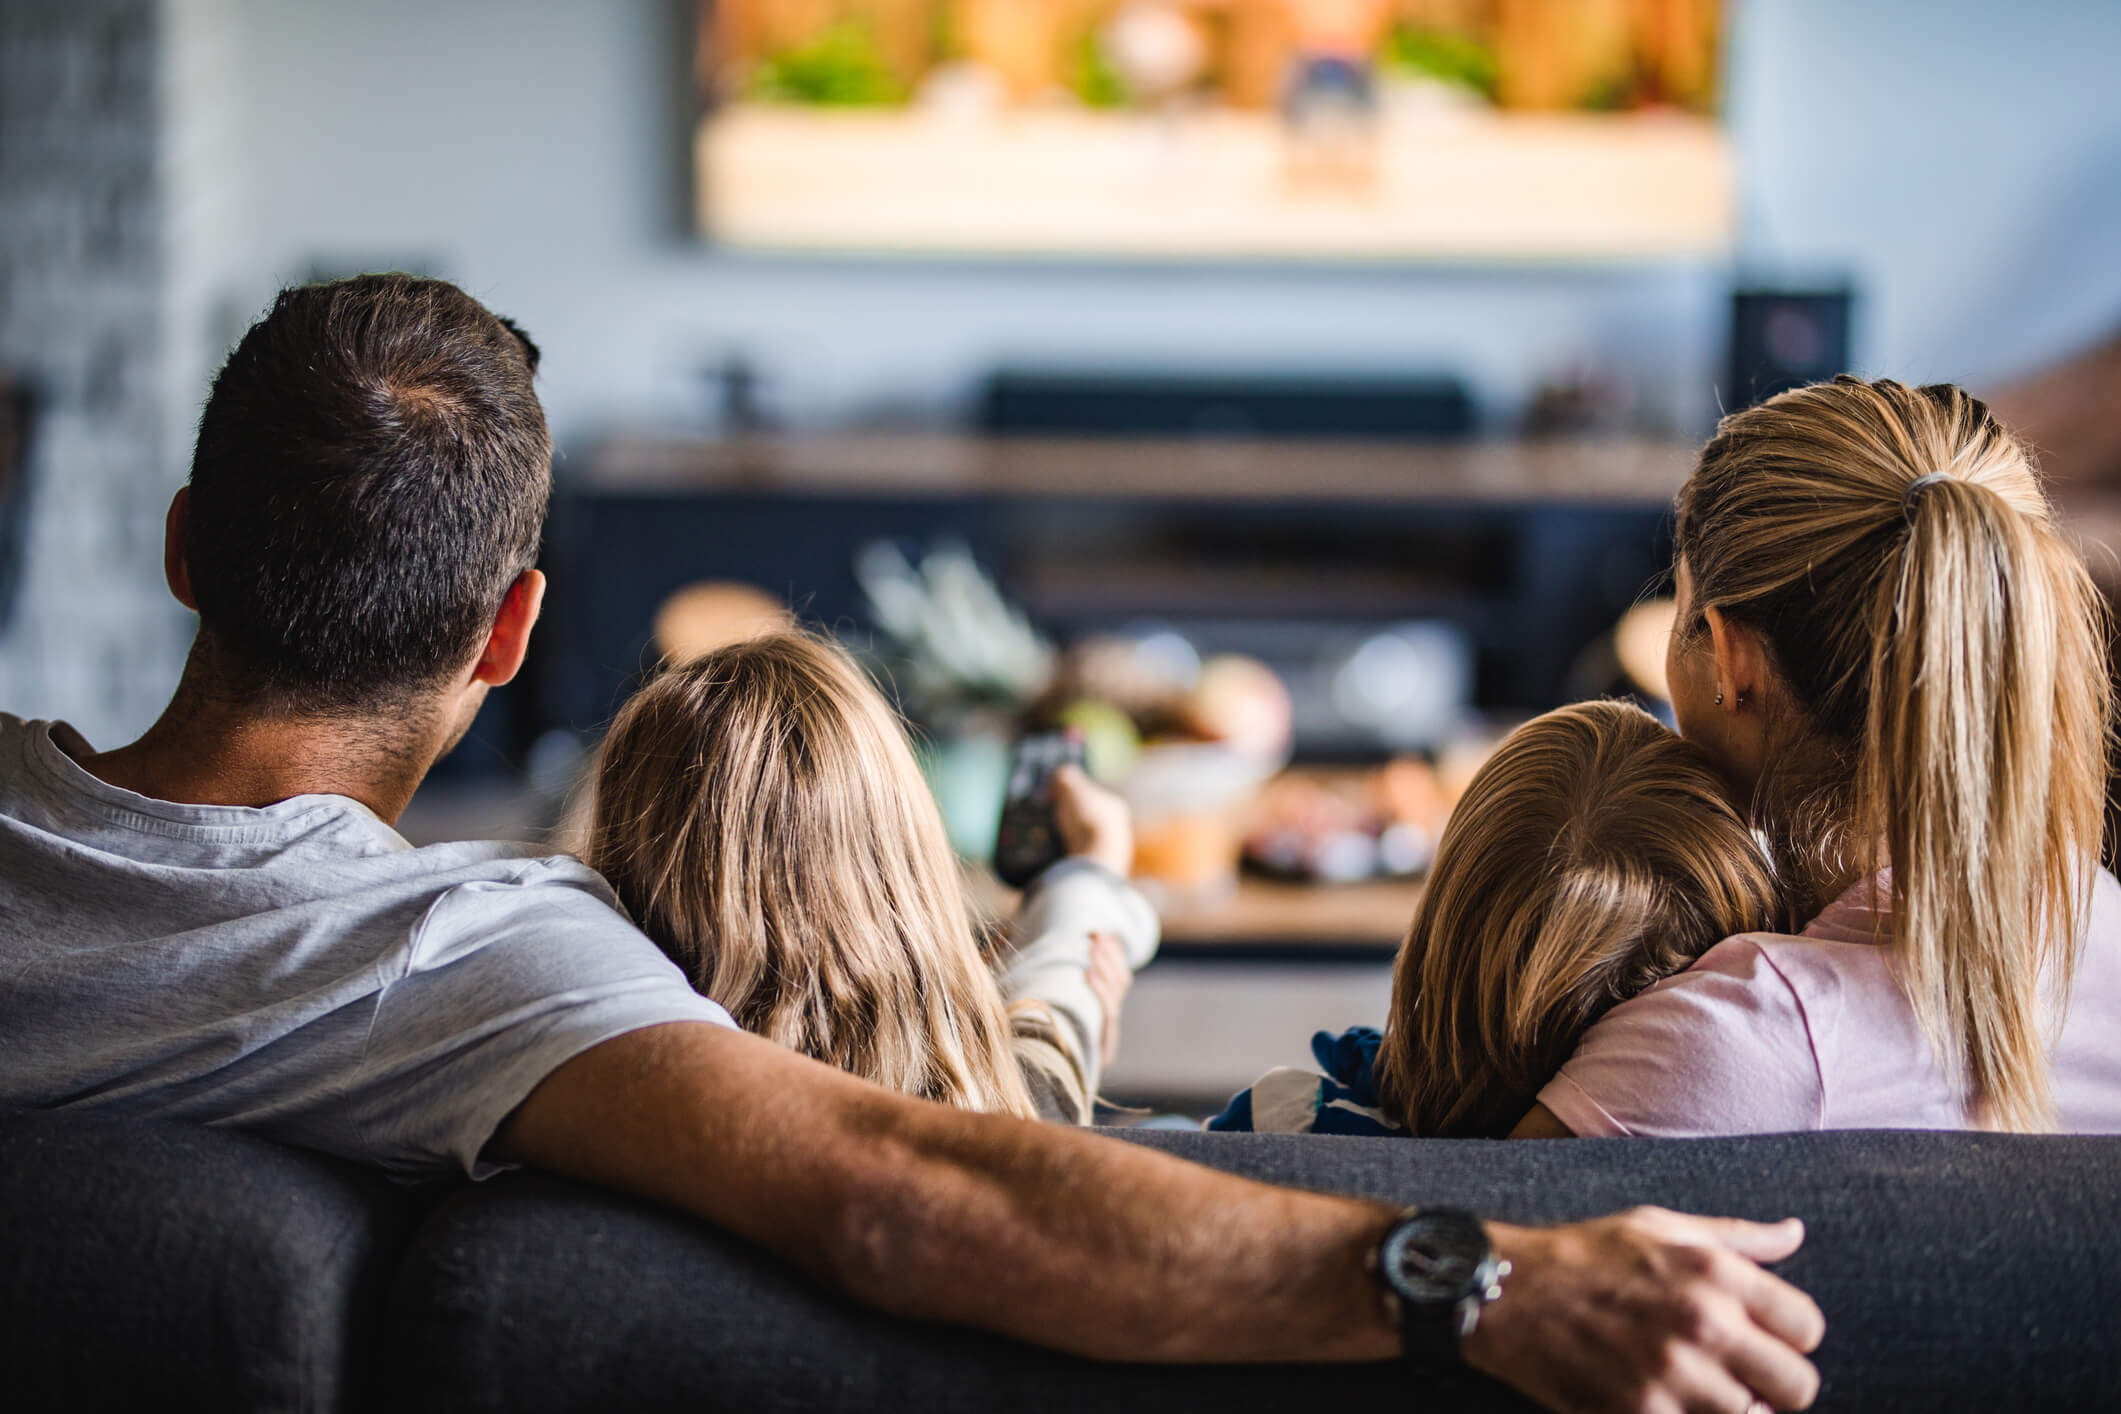 Dad, mom, daughter, and son sitting on couch watching Hulu TV